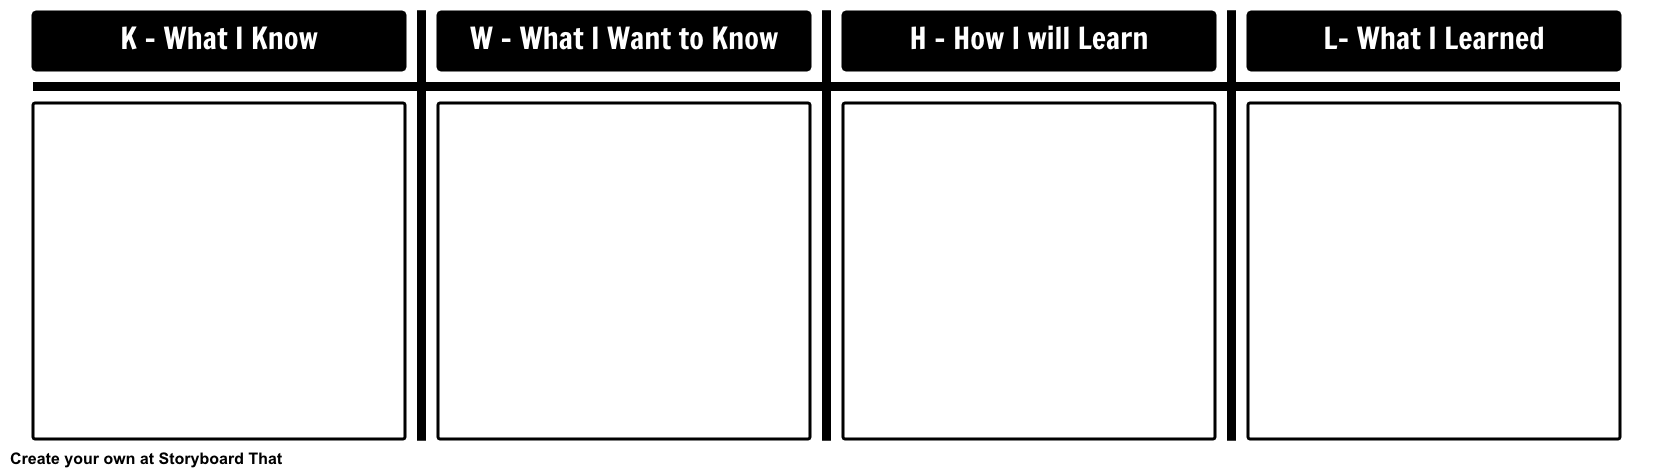 image relating to Free Printable Kwl Chart named KWL Chart Template Image Organizer Templates KWHL Chart